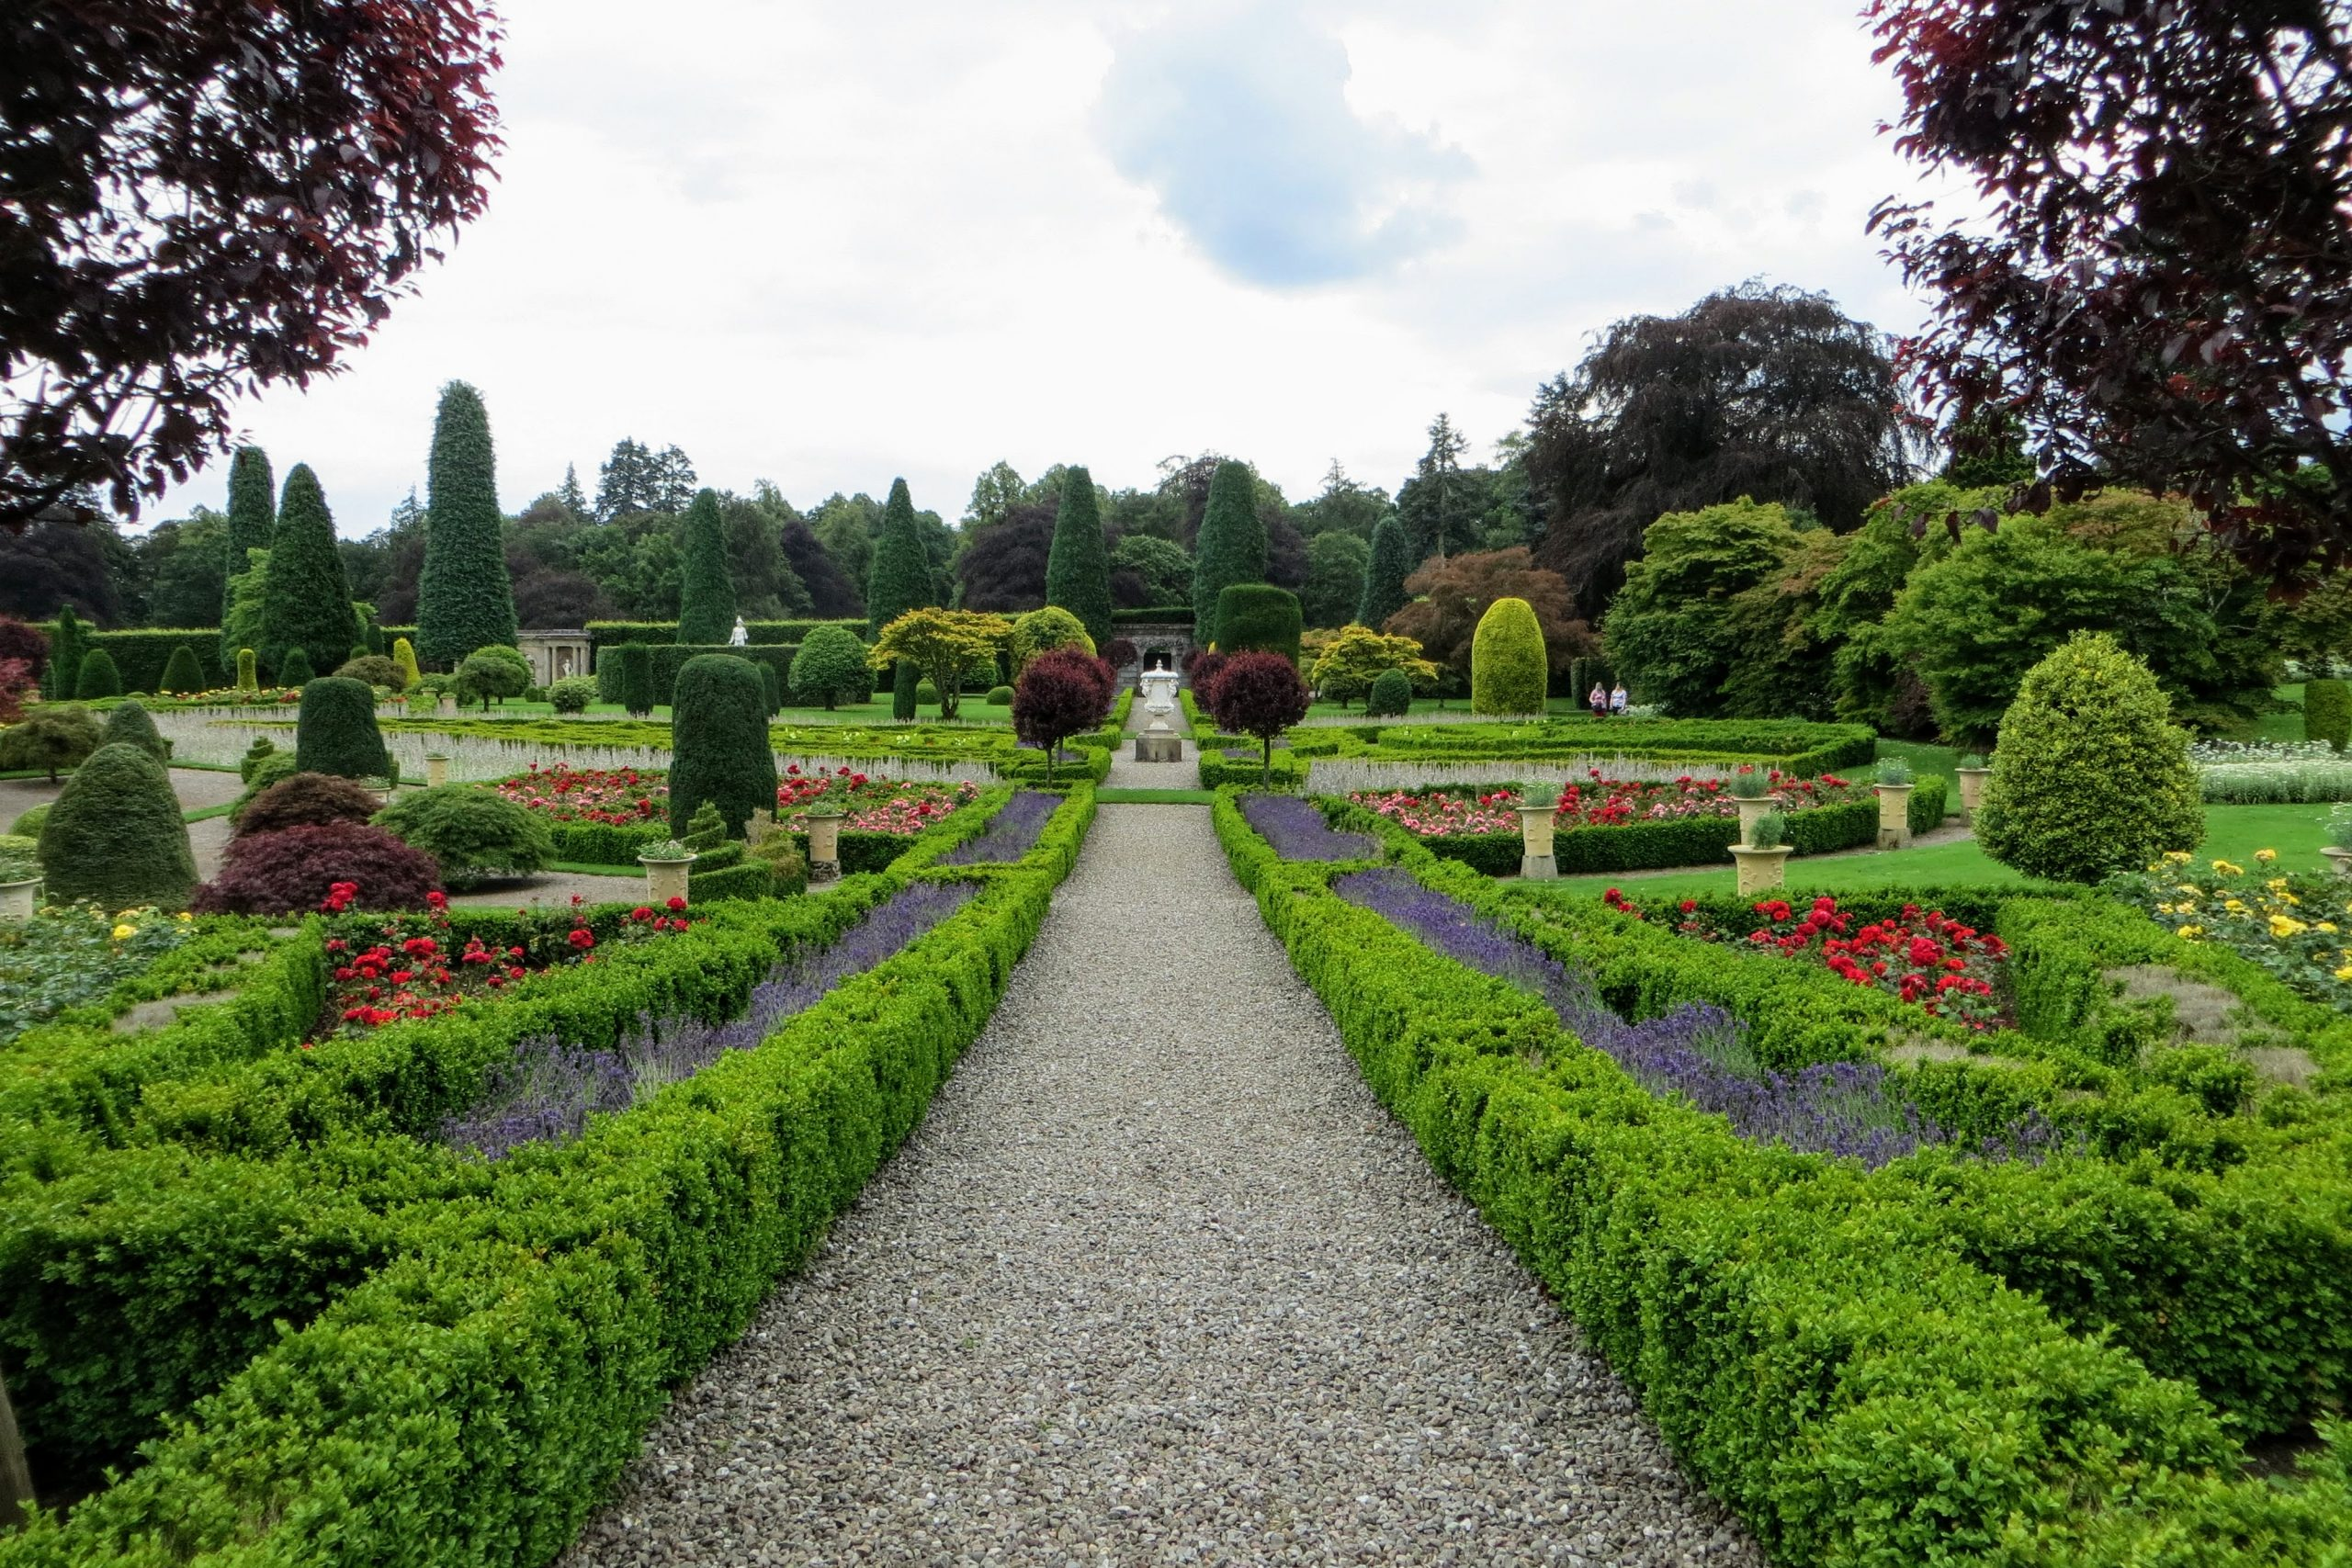 Short Tours of Scotland - Drummond Castle Gardens